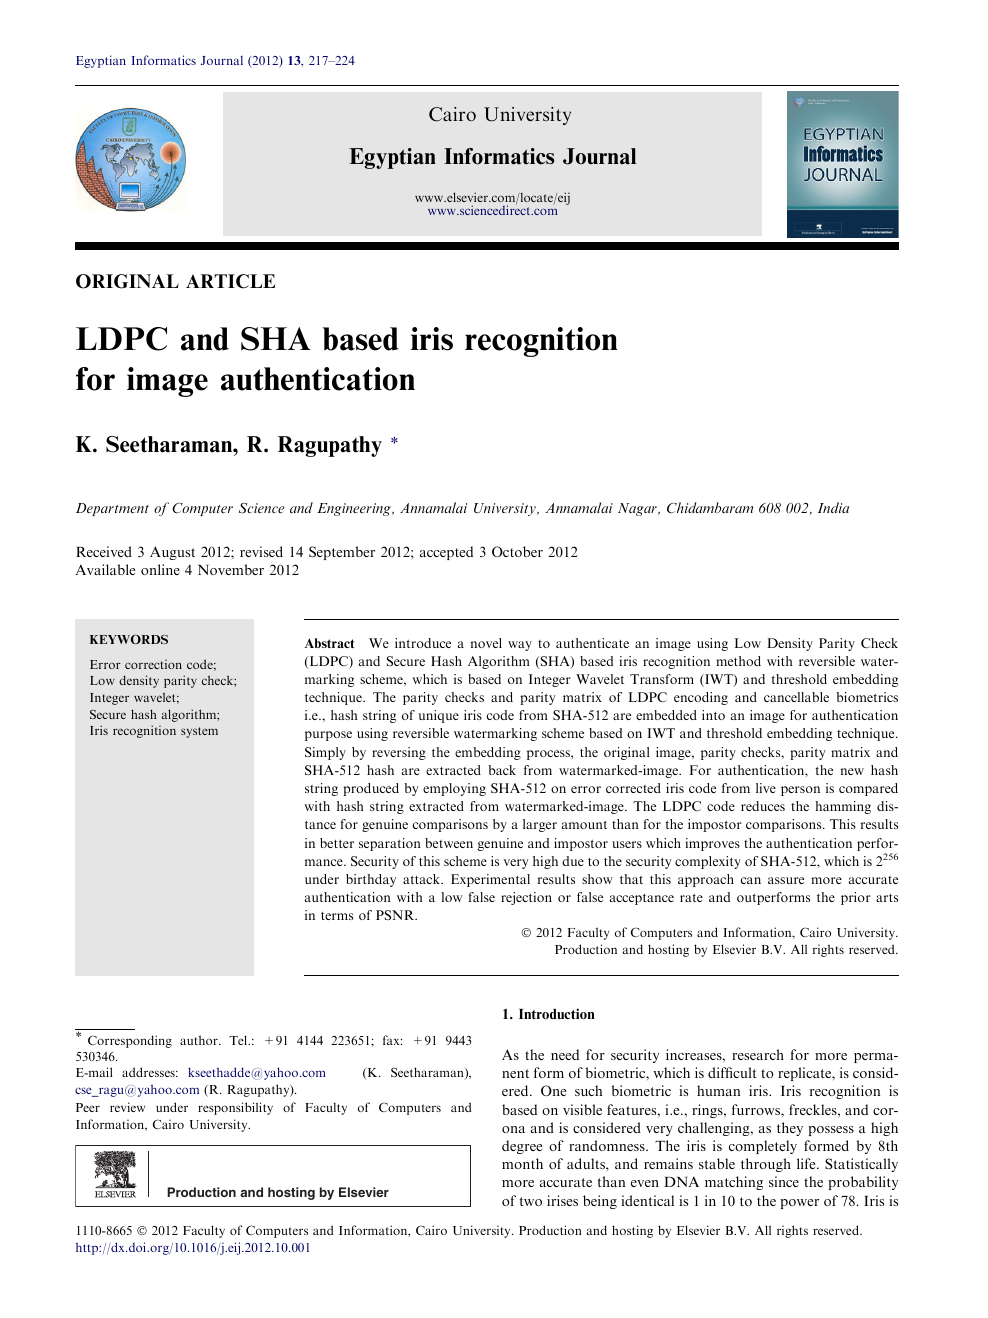 LDPC and SHA based iris recognition for image authentication